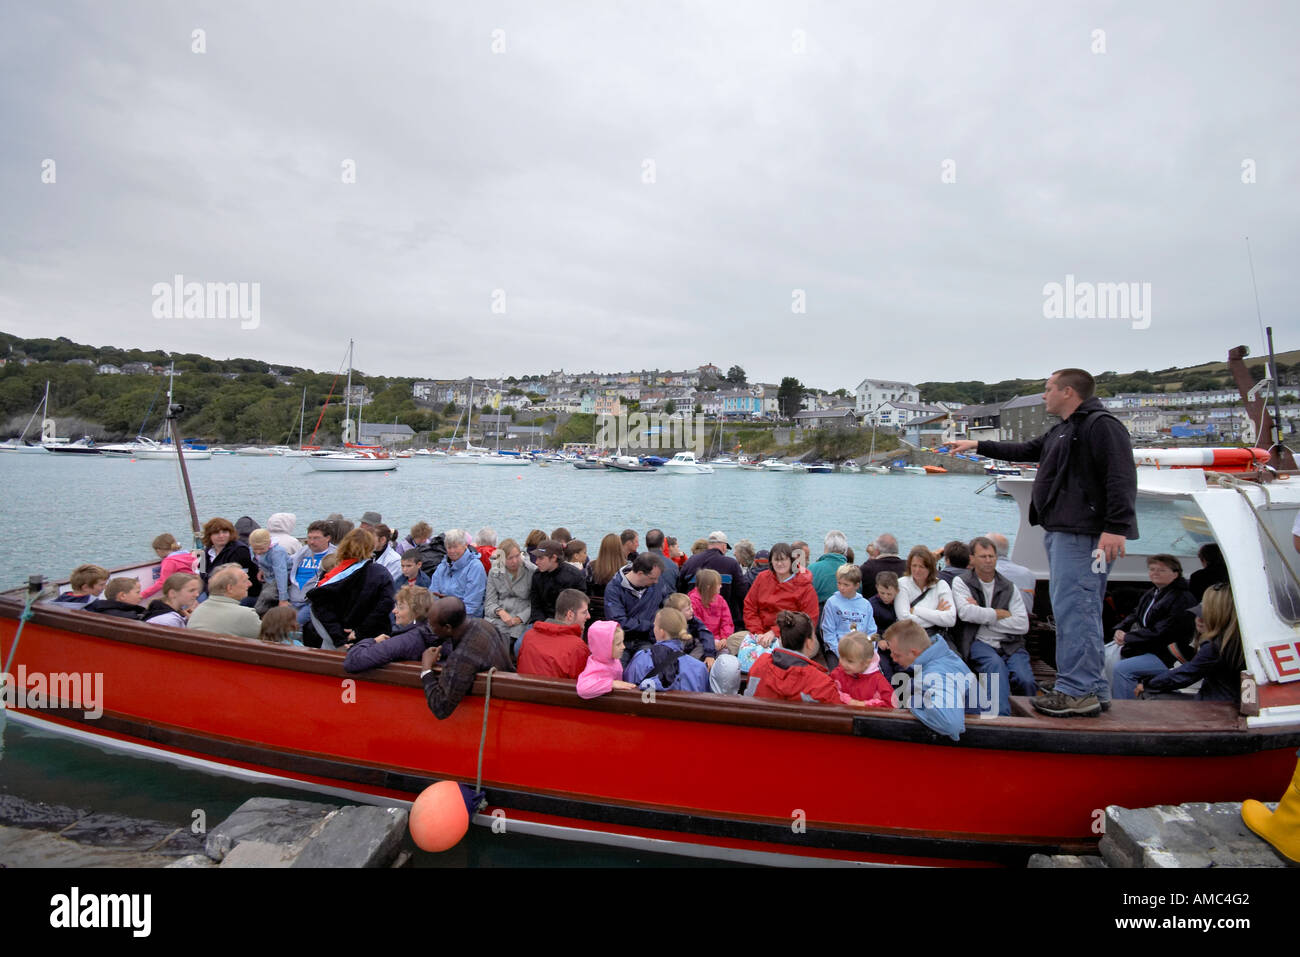 man counting people on a crowded whale watching boat at New Quay Wales - Stock Image